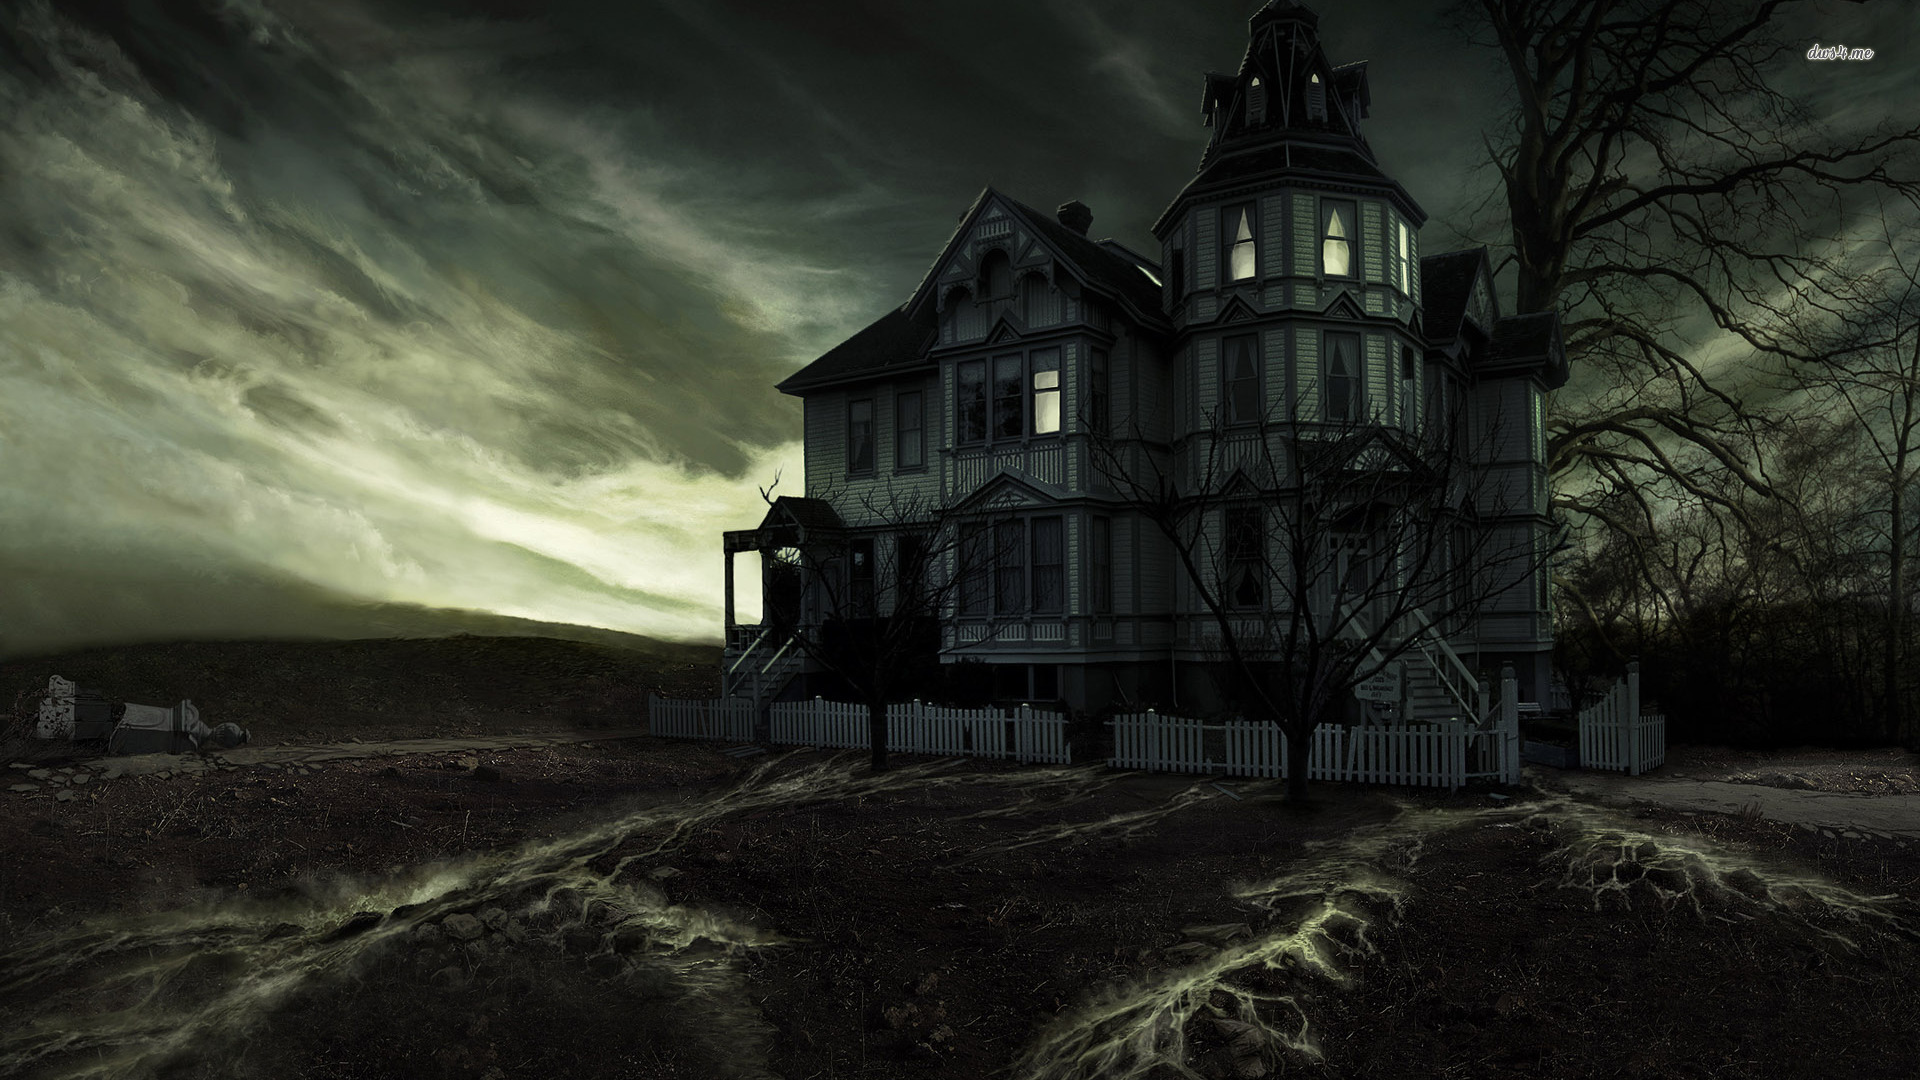 Free Download Spooky House Wallpapers Hd 258768 1920x1080 For Your Desktop Mobile Tablet Explore 48 Spooky Wallpaper Scary Wallpapers For Desktop Free Scary Halloween Wallpaper Downloads Creepy Halloween Wallpapers For Desktop